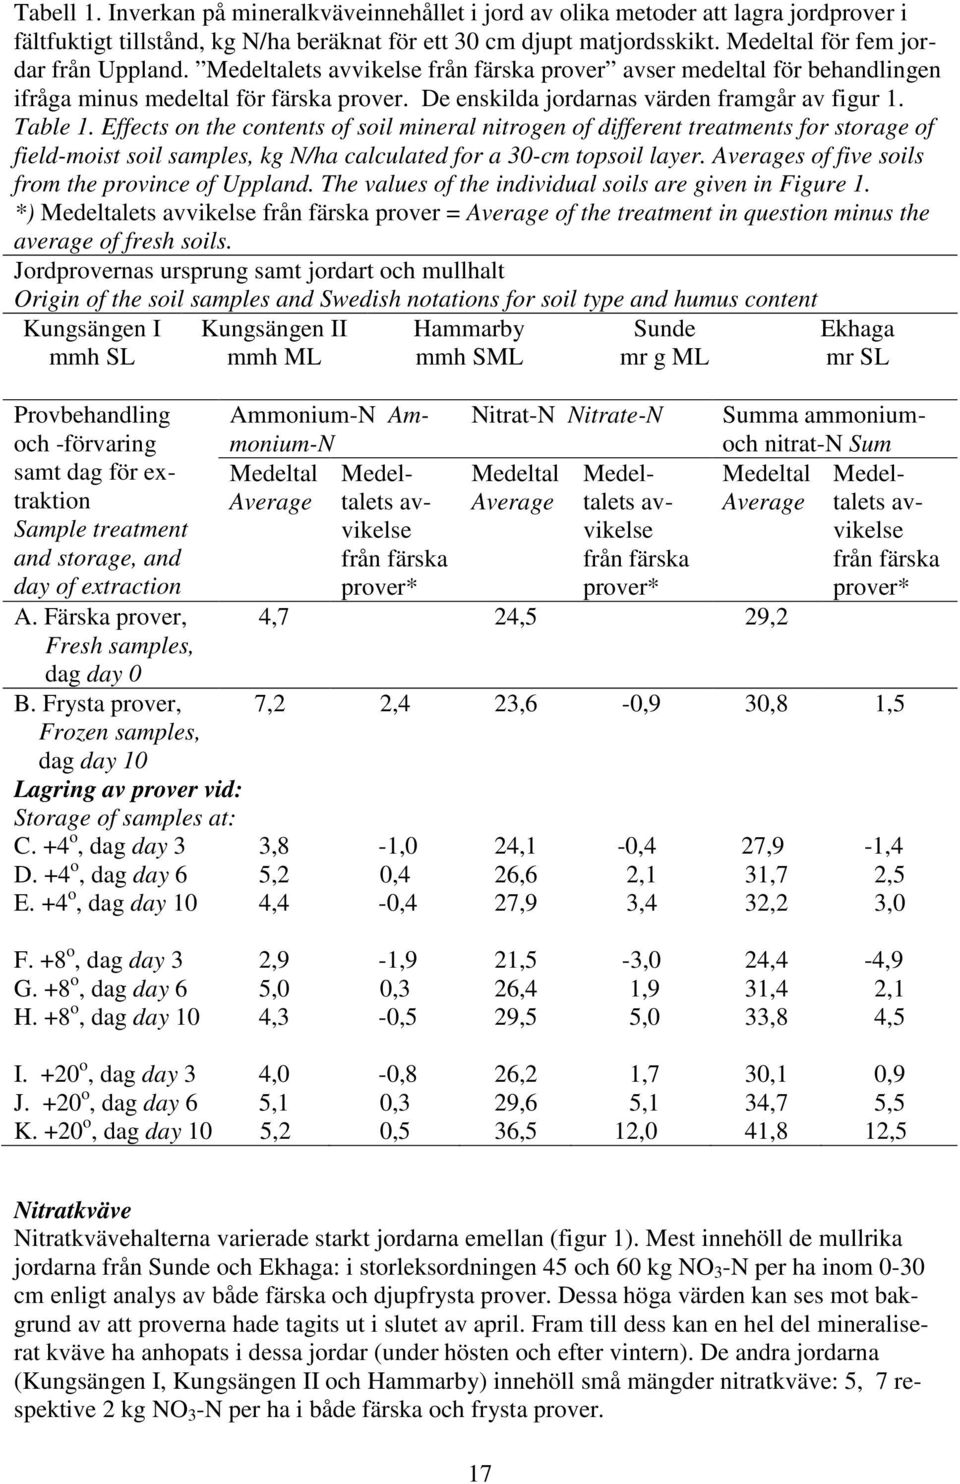 Table 1. Effects on the contents of soil mineral nitrogen of different treatments for storage of field-moist soil samples, kg N/ha calculated for a 30-cm topsoil layer.